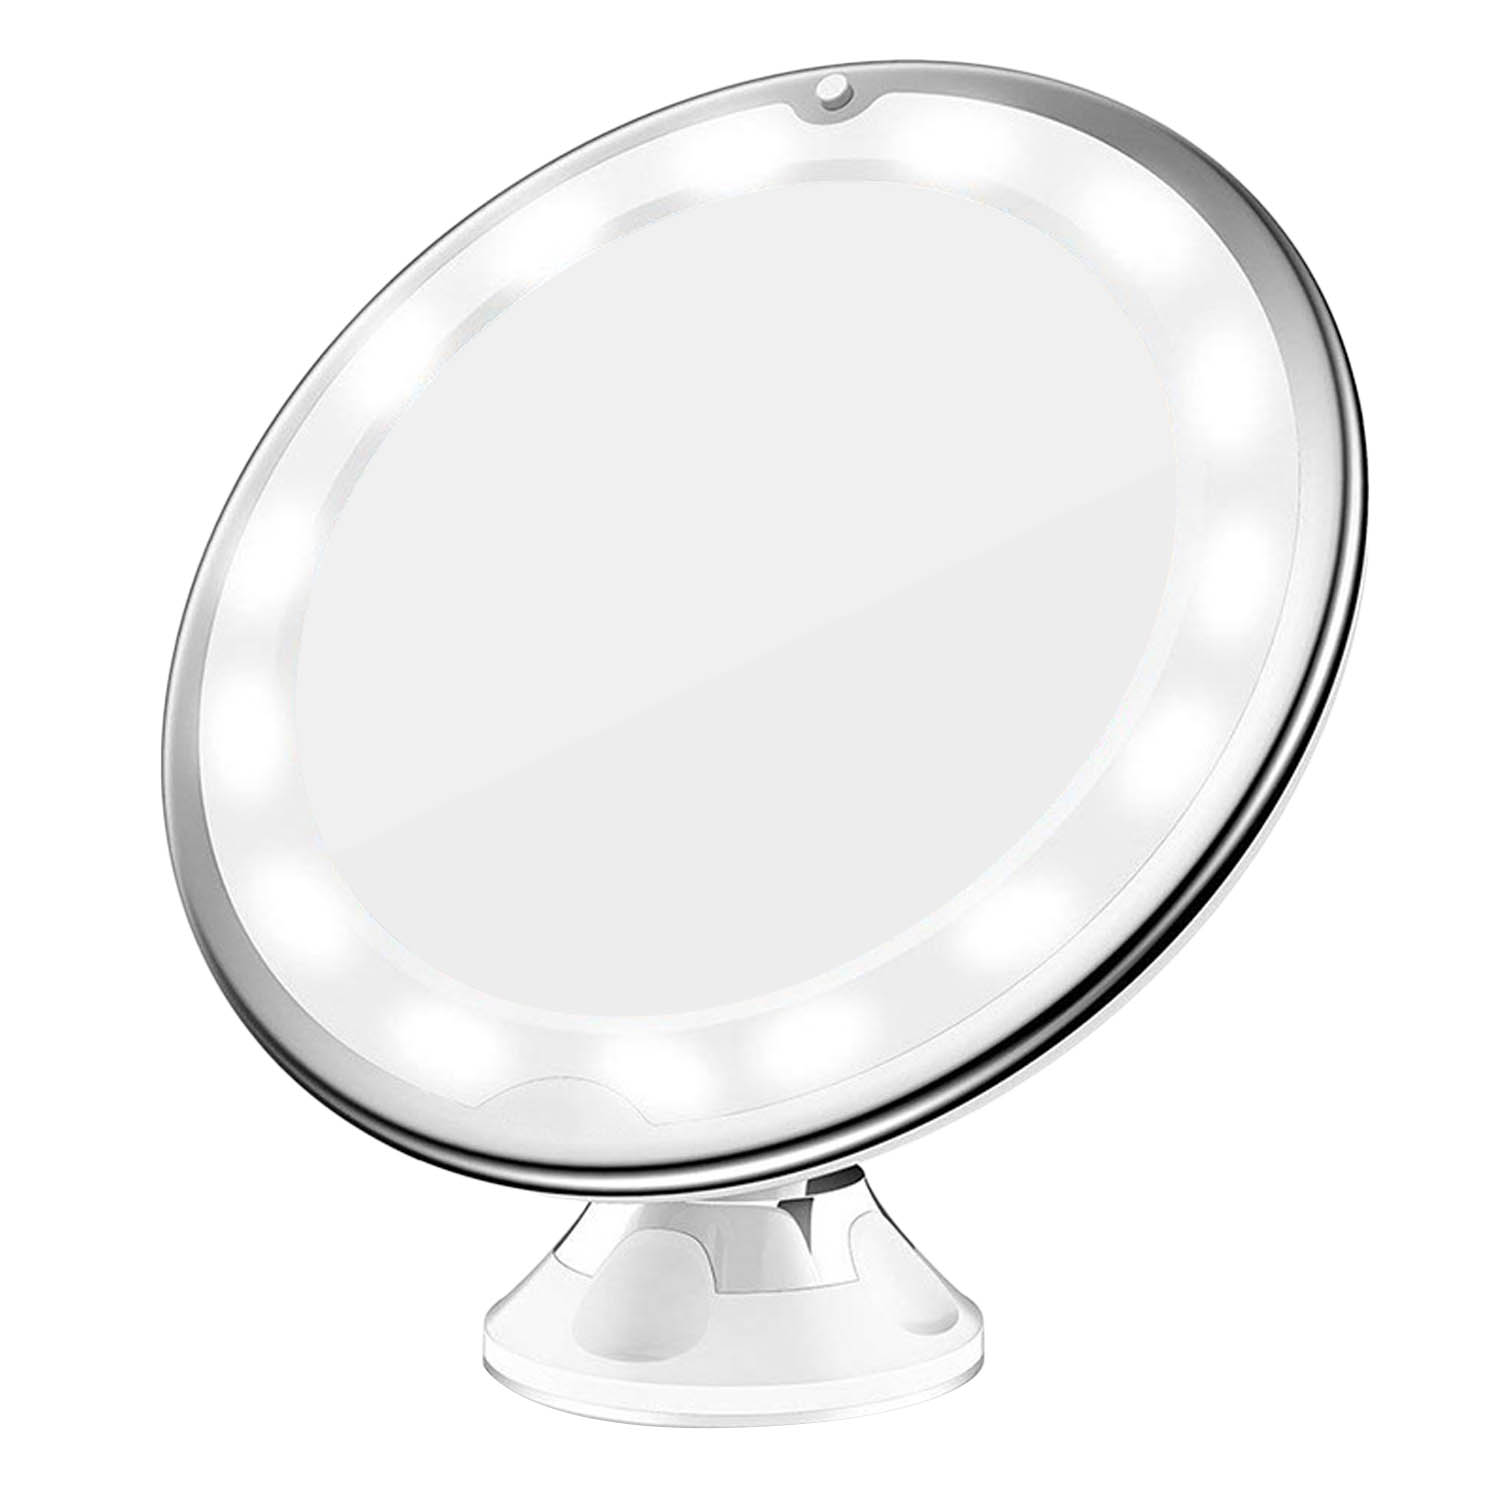 360 Degree Rotation LED 10x Magnification Makeup Mirror with Suction Cup for Bedroom Bathroom Dressing Table Makeup Room 5